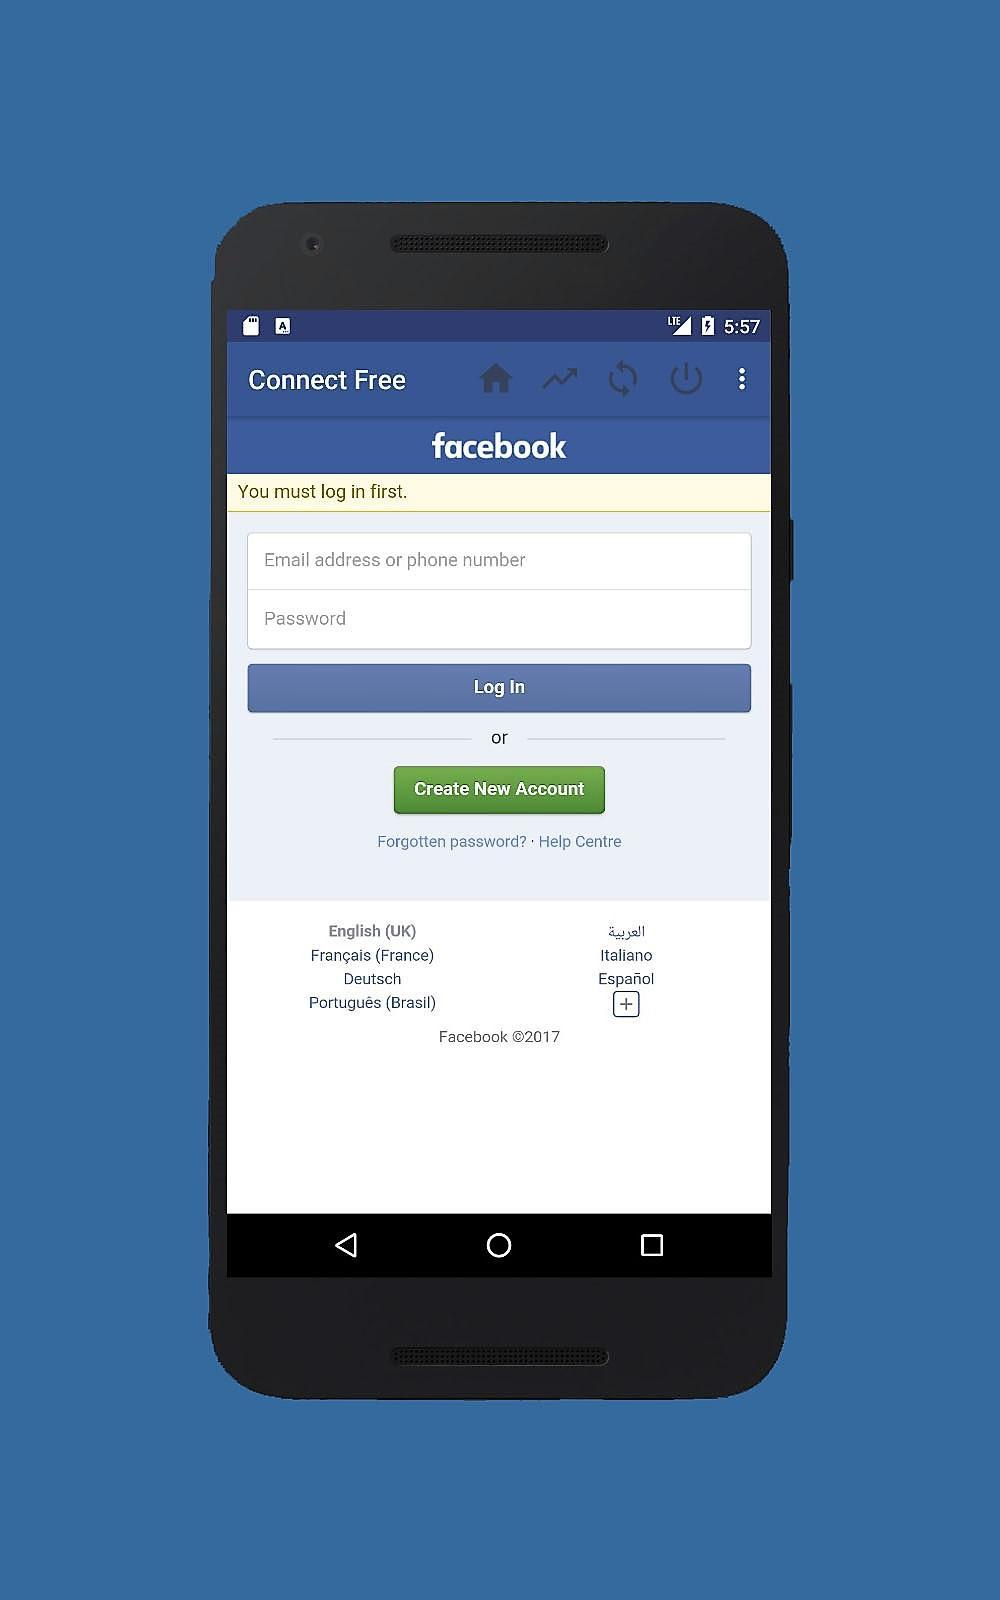 facebook lite apk for android 4.1.1